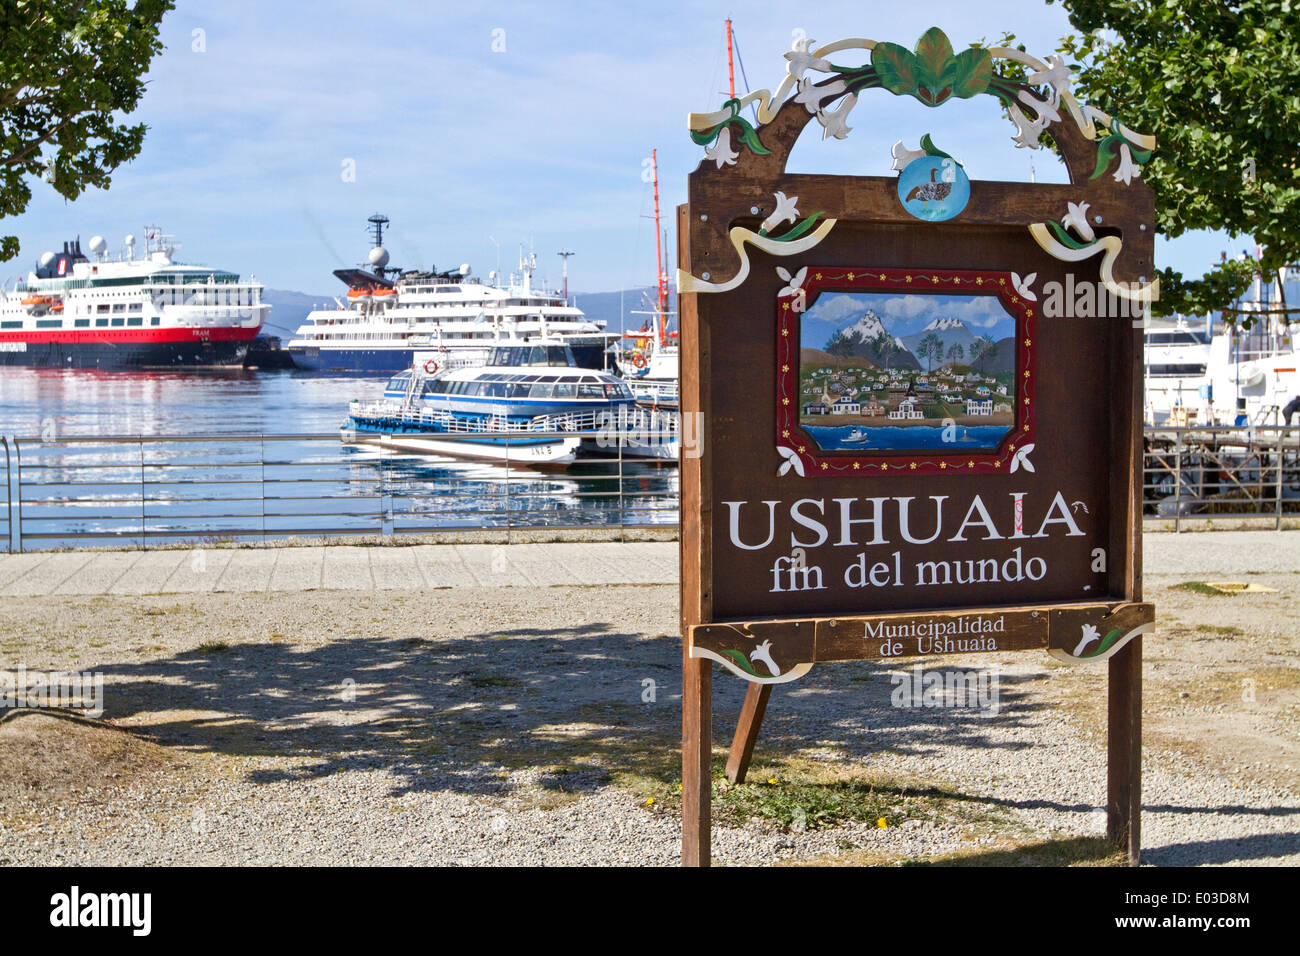 Ushuaia Argentina end of the earth sign with tourist cruise ship, ships in background preparing to travel to Antarctica. - Stock Image